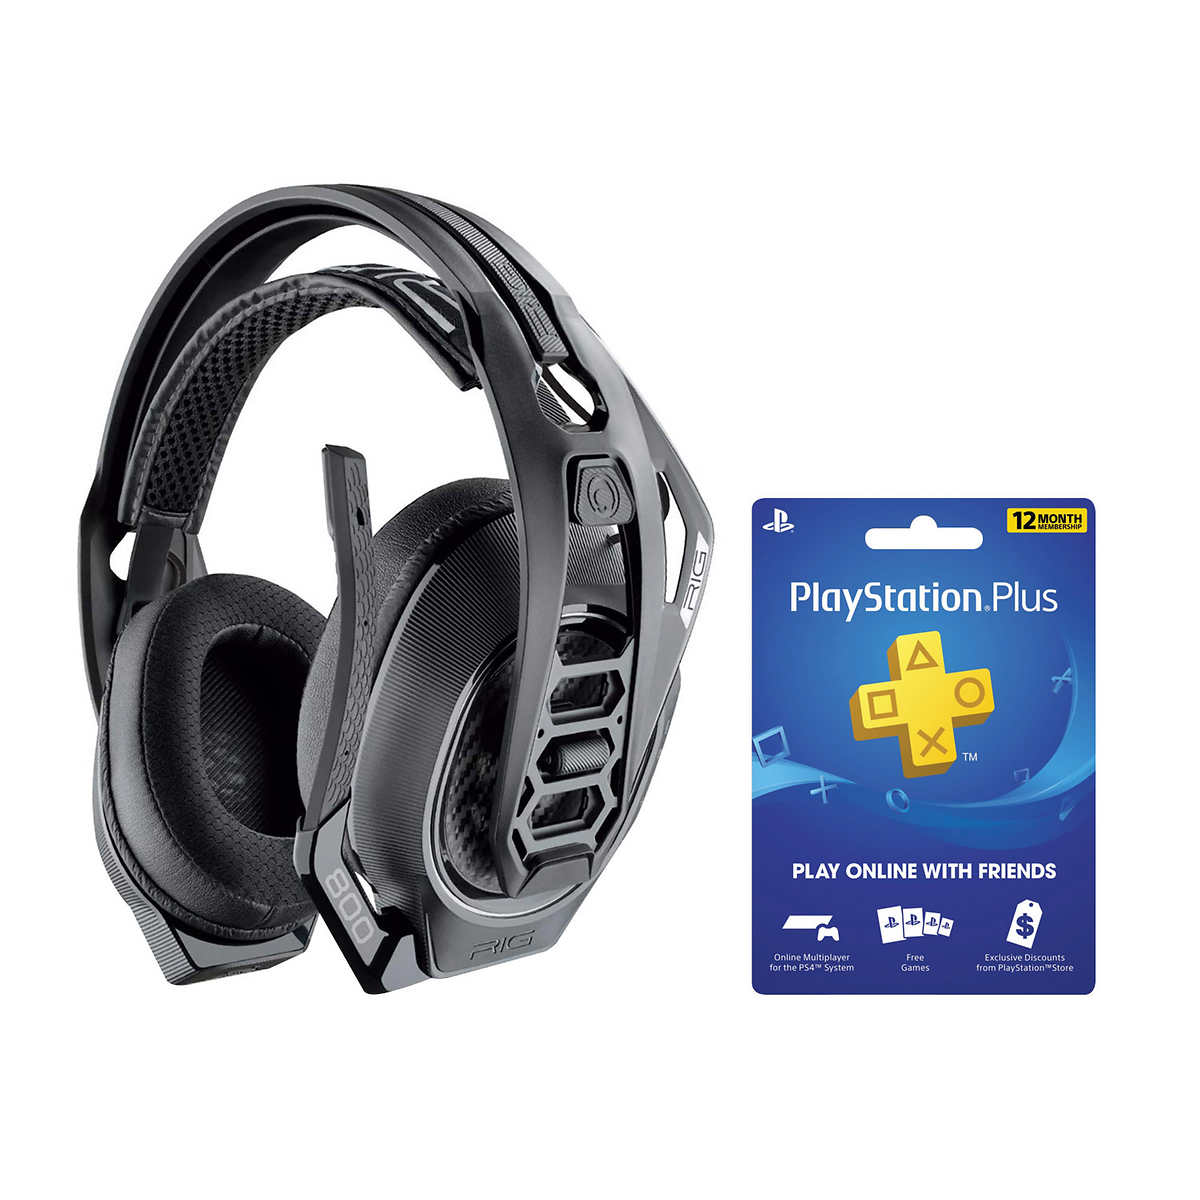 Rig 800 Ps4 Pc Wireless Gaming Headset With Ps4 12 Month Membership